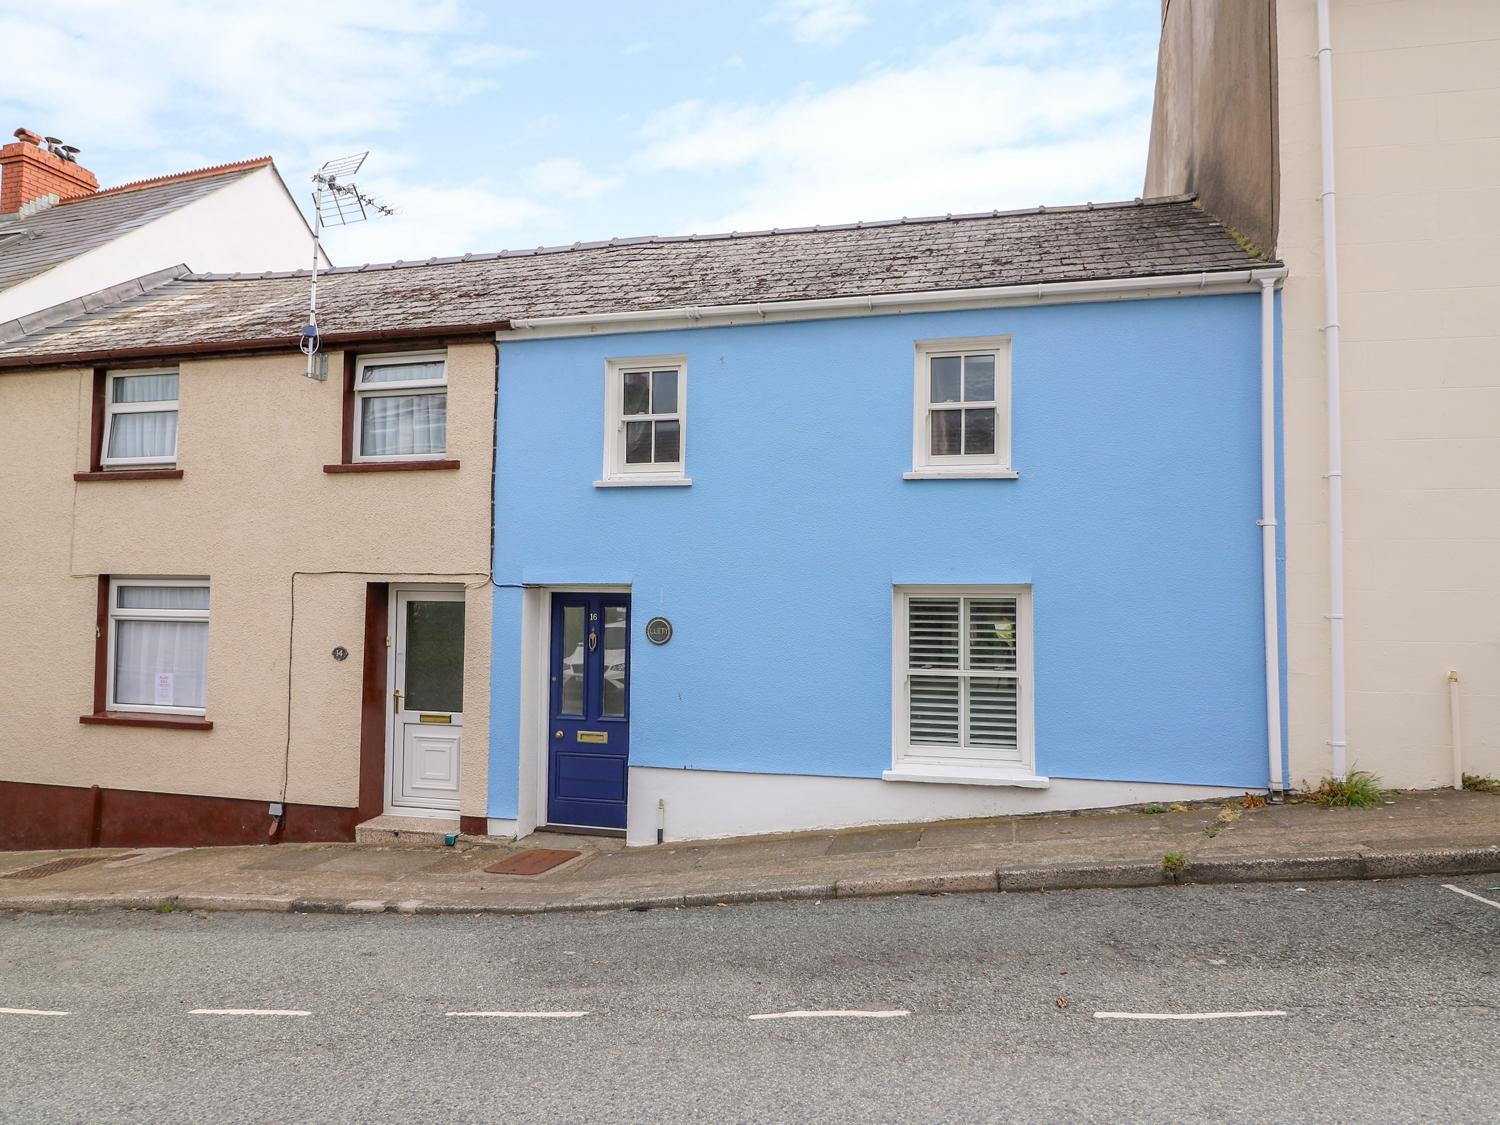 Holiday Cottage Reviews for Llety - Holiday Cottage in Fishguard, Pembrokeshire